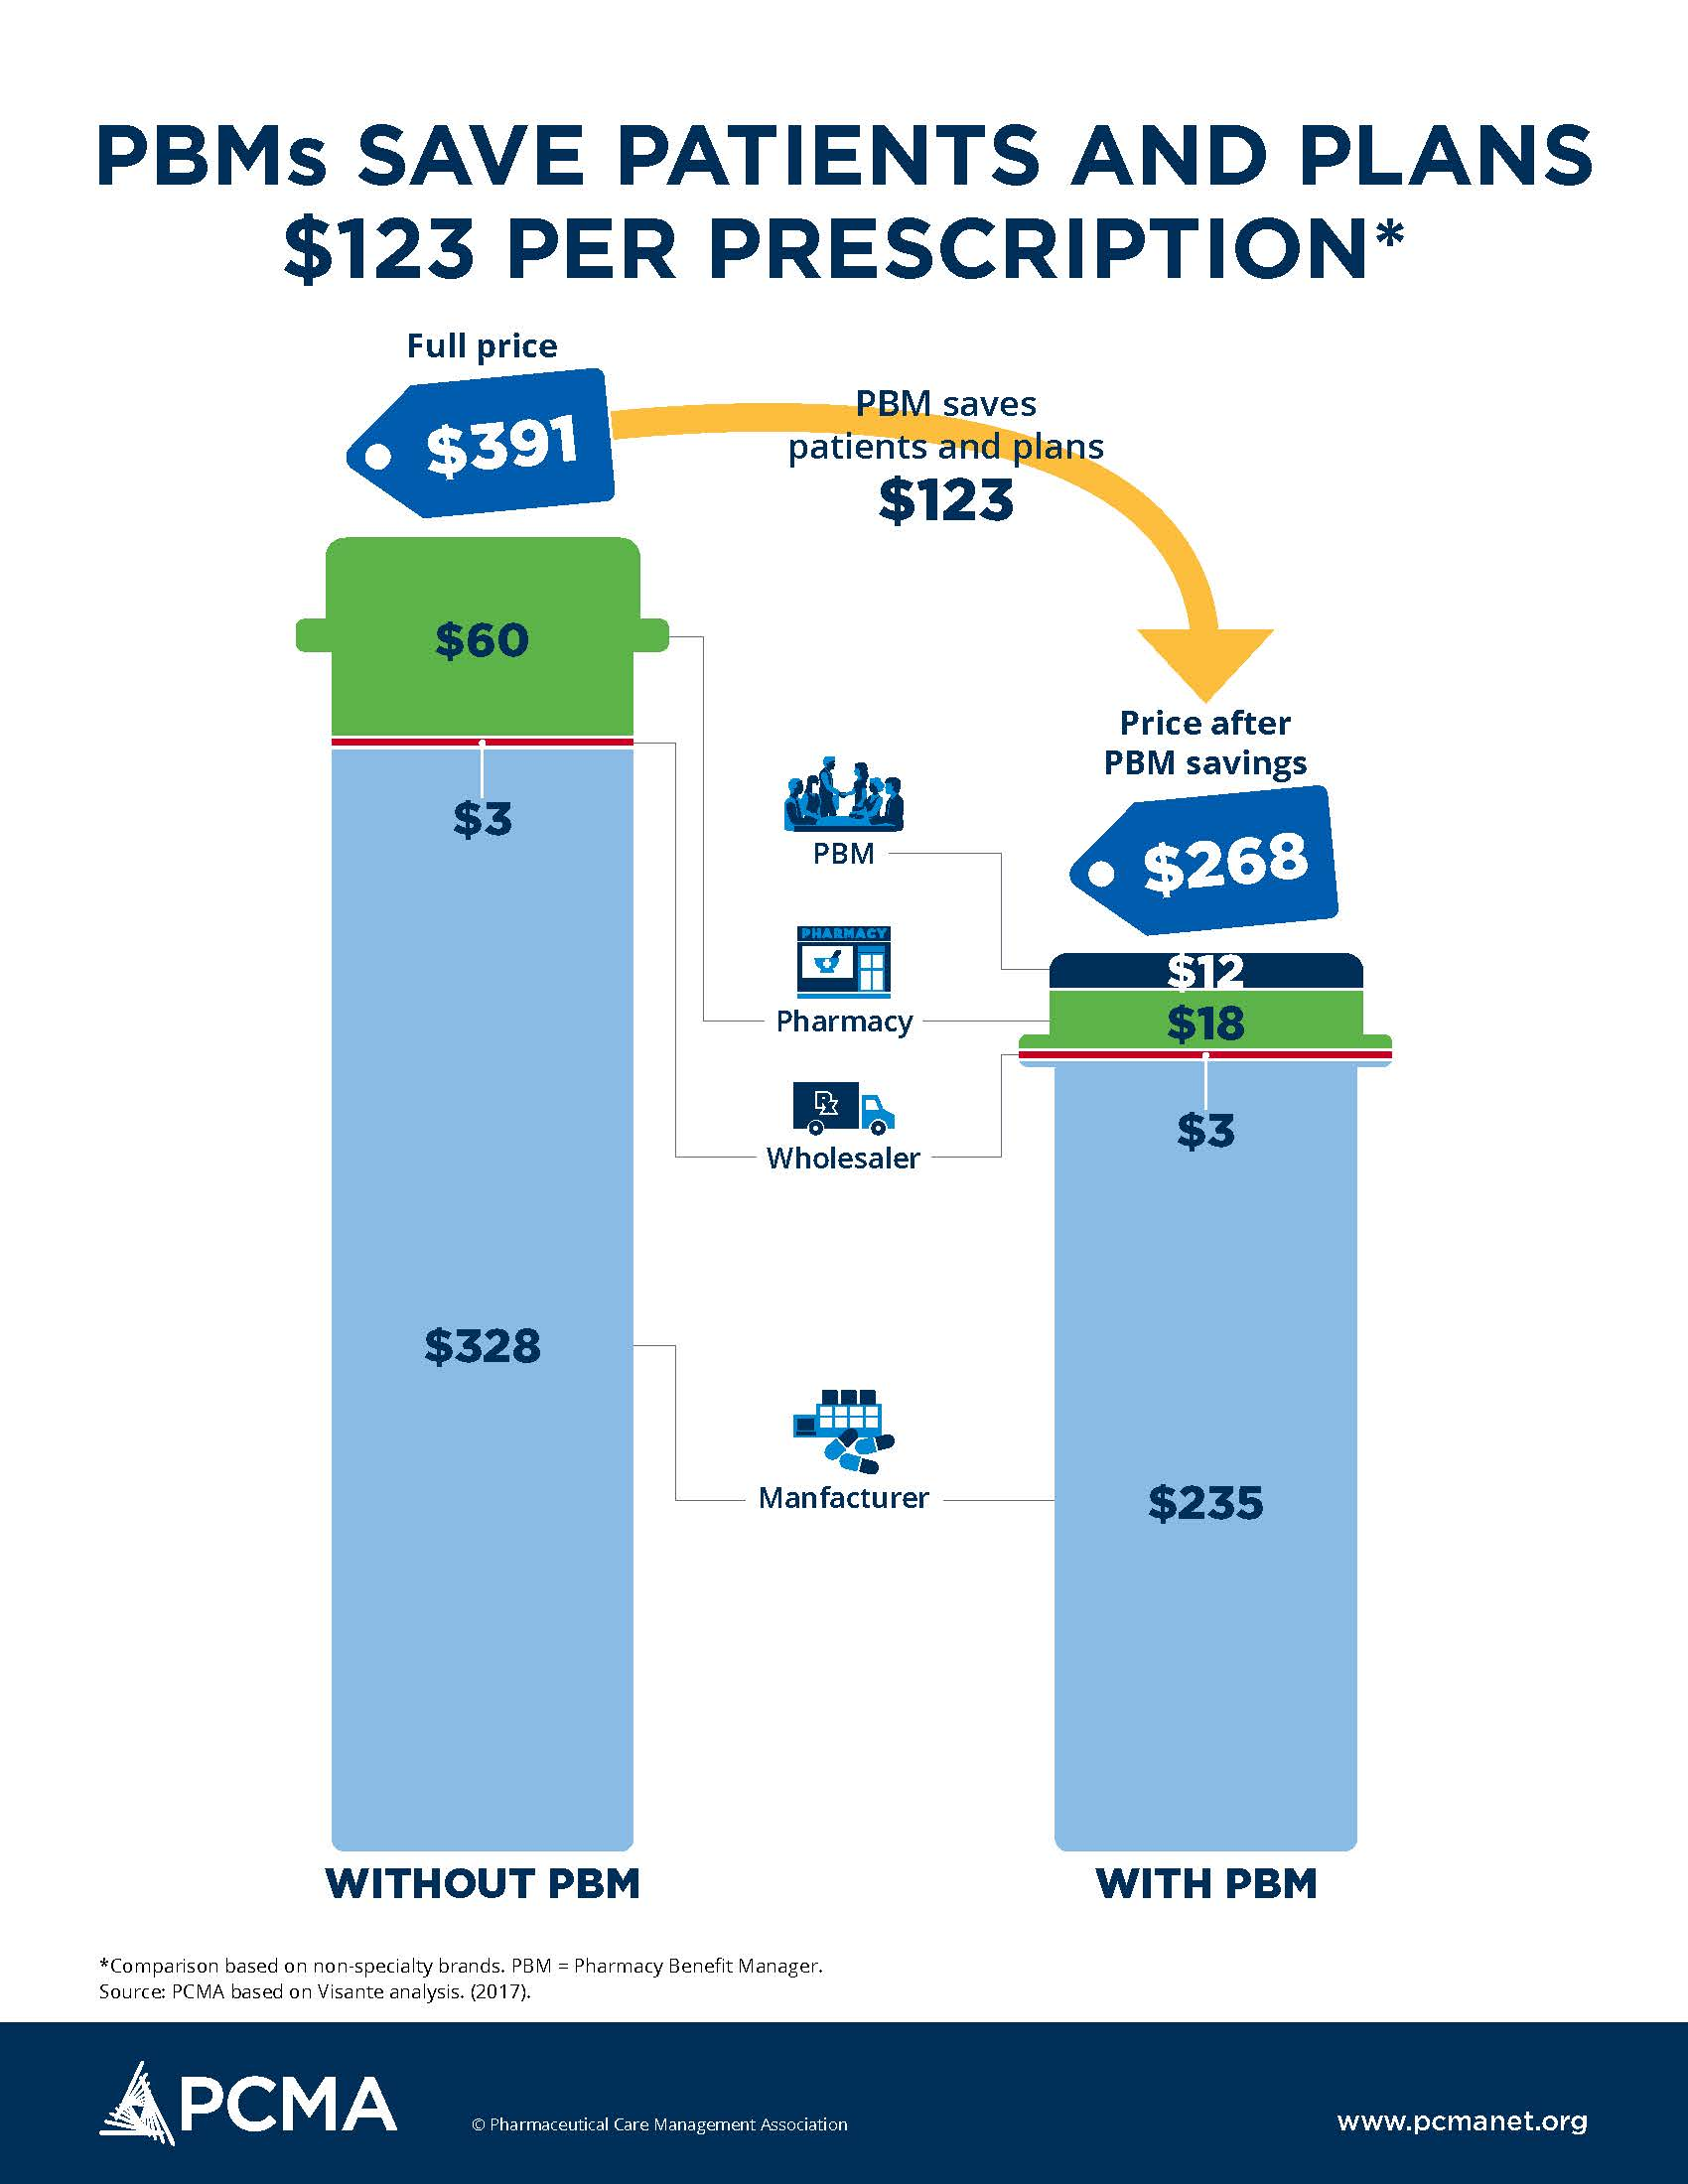 This is a one-page infographic that explains that PBMs save patients and plans $123 per prescription.